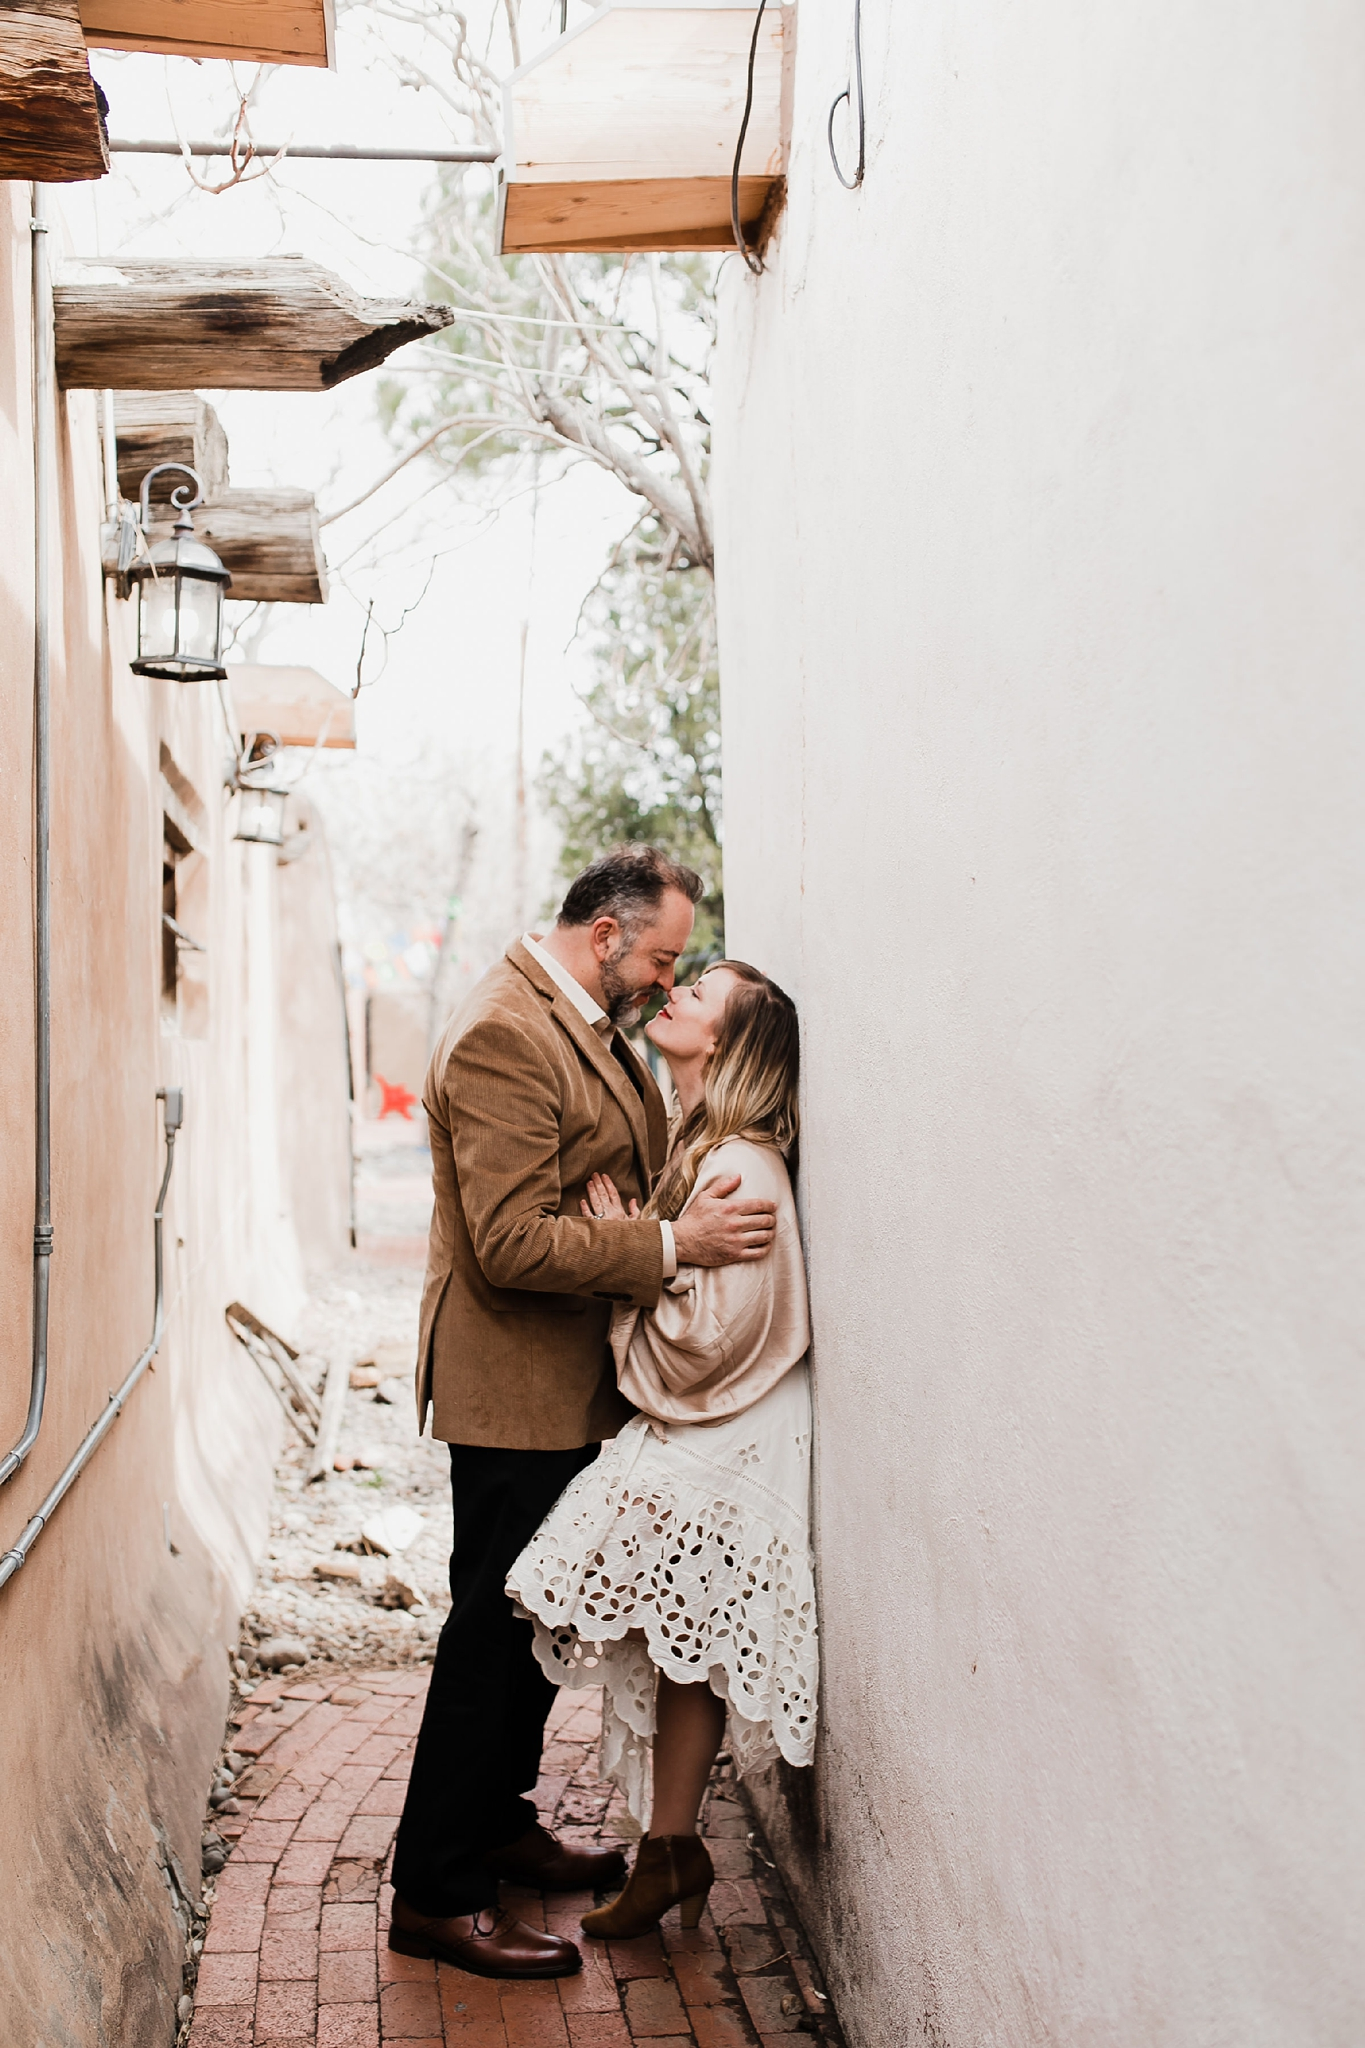 Alicia+lucia+photography+-+albuquerque+wedding+photographer+-+santa+fe+wedding+photography+-+new+mexico+wedding+photographer+-+new+mexico+wedding+-+new+mexico+engagement+-+engagement+style+-+style+lookbook_0070.jpg